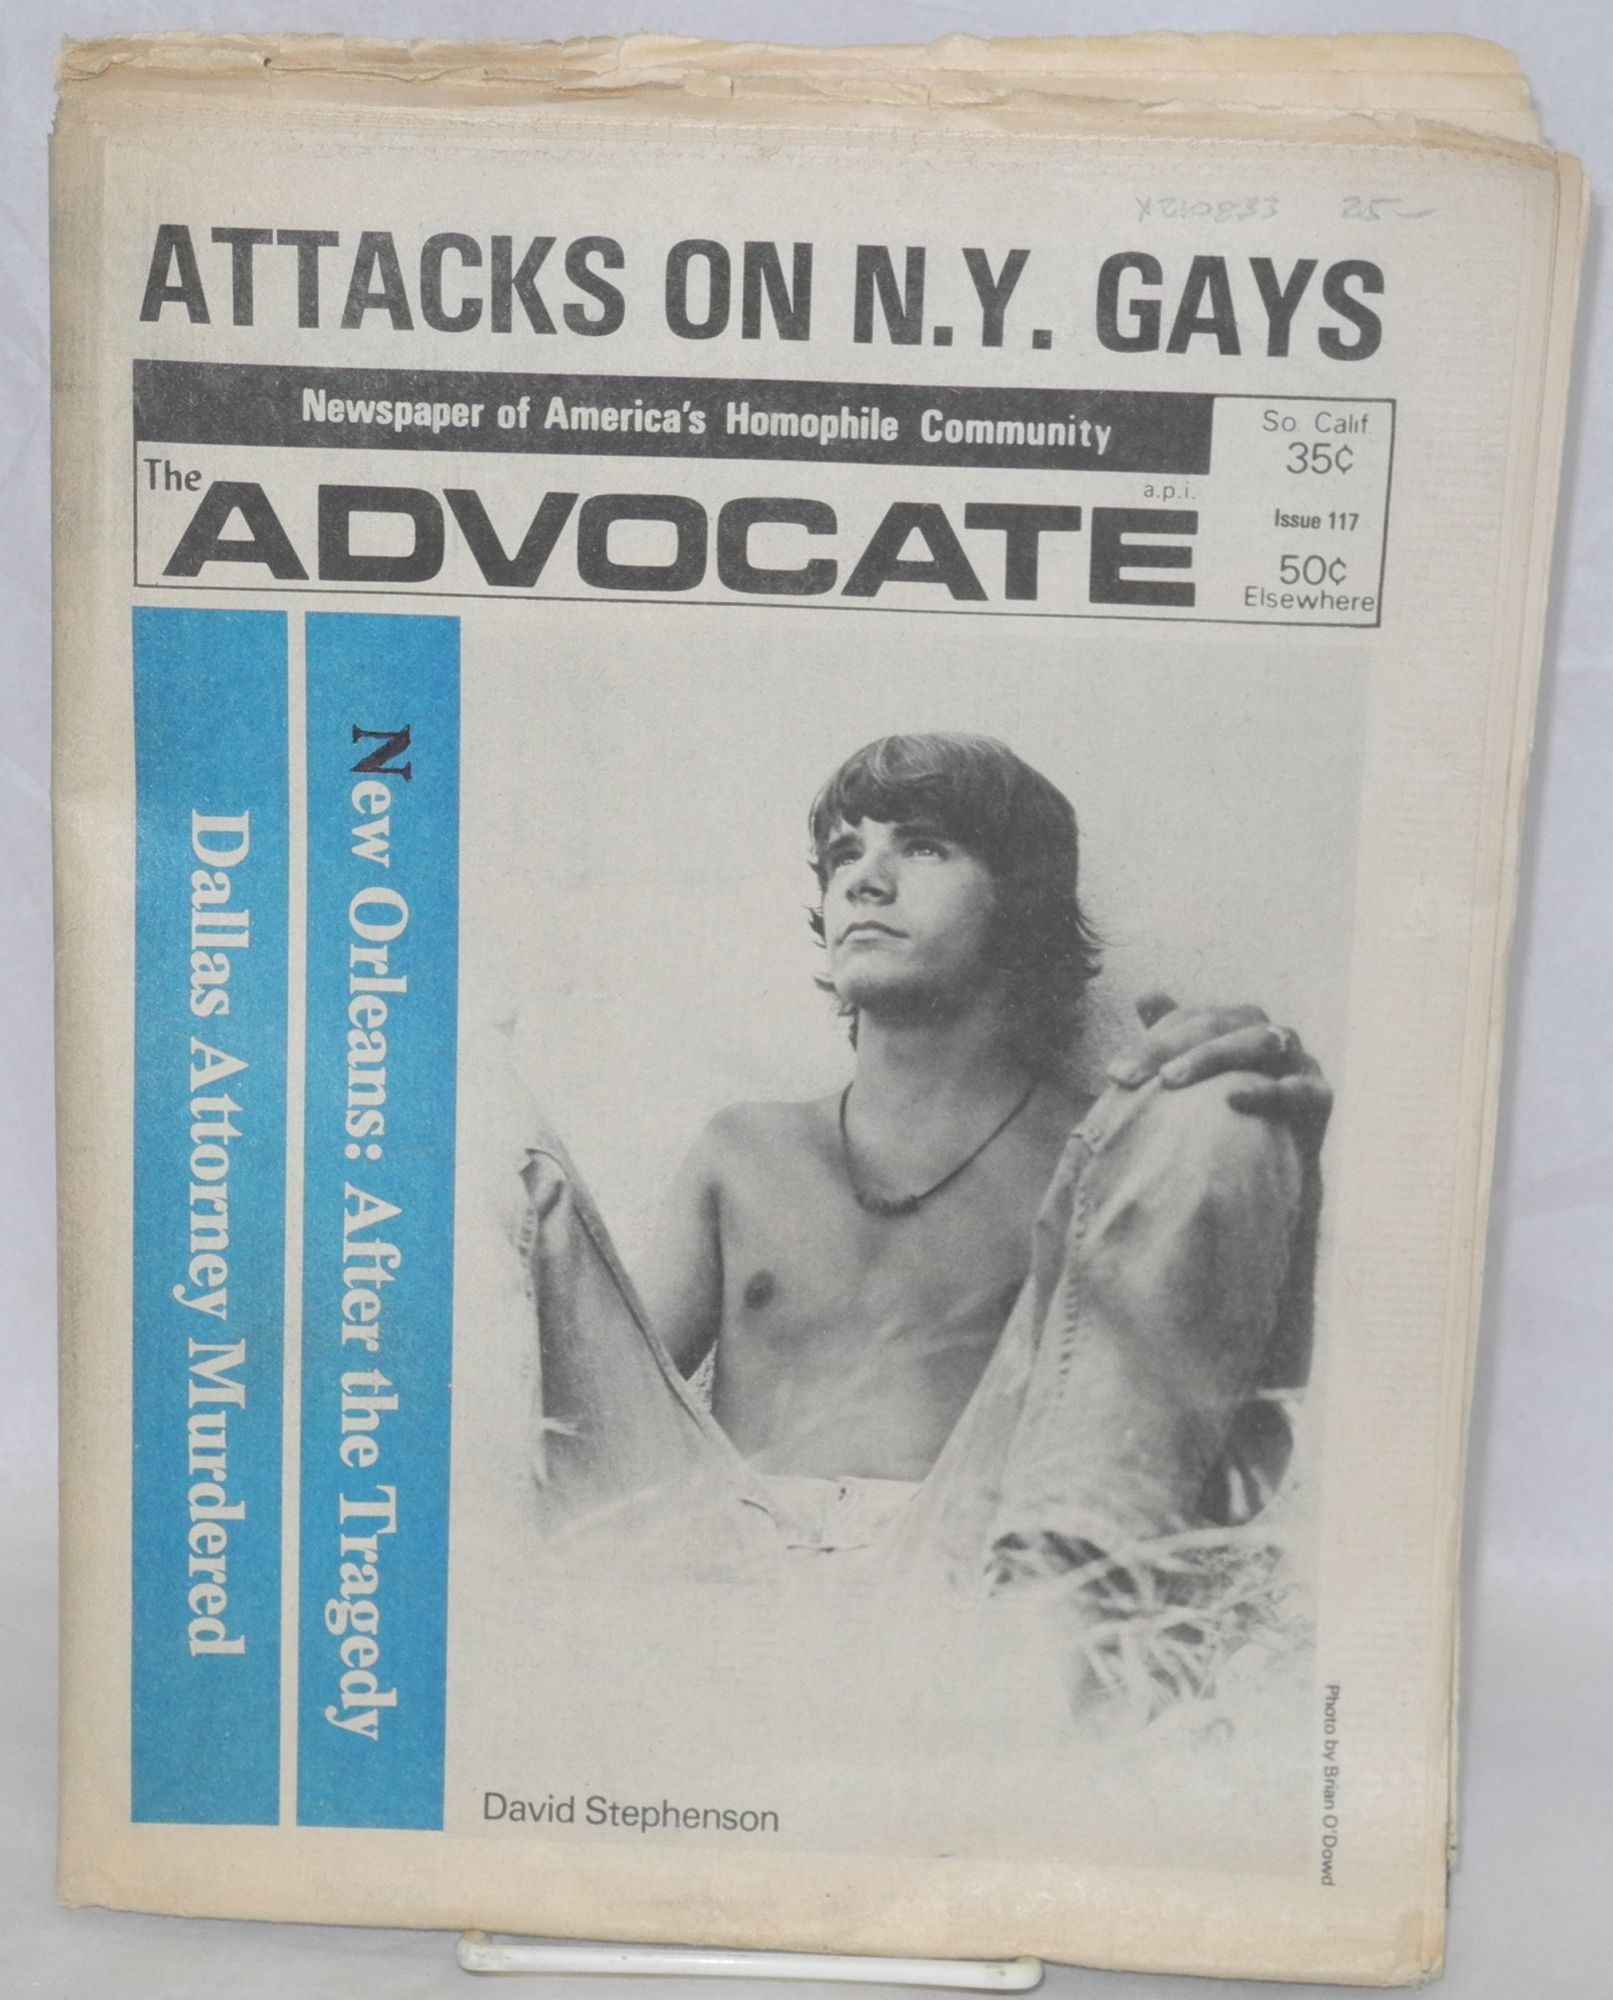 from Declan the advocate gay newspaper